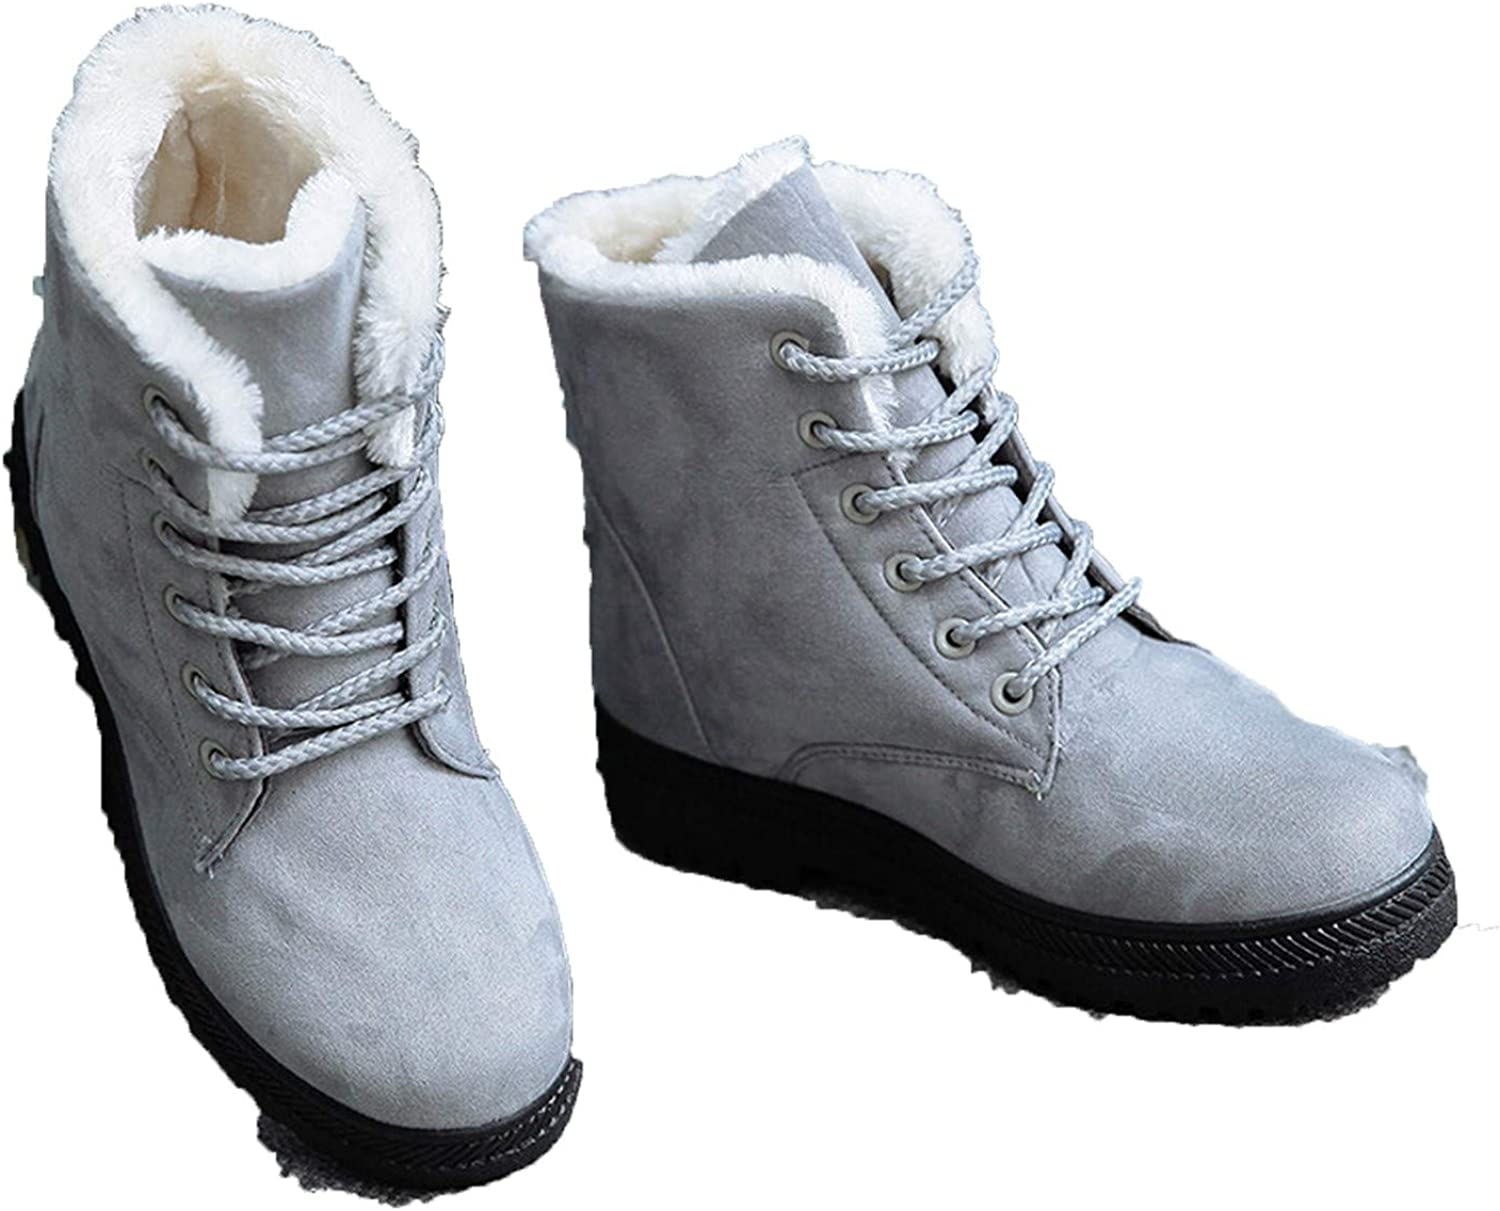 Smile-bi Women Boots 2018 New Women Winter Boots Warm Snow Boots Fashion Ankle Boots for Women shoes